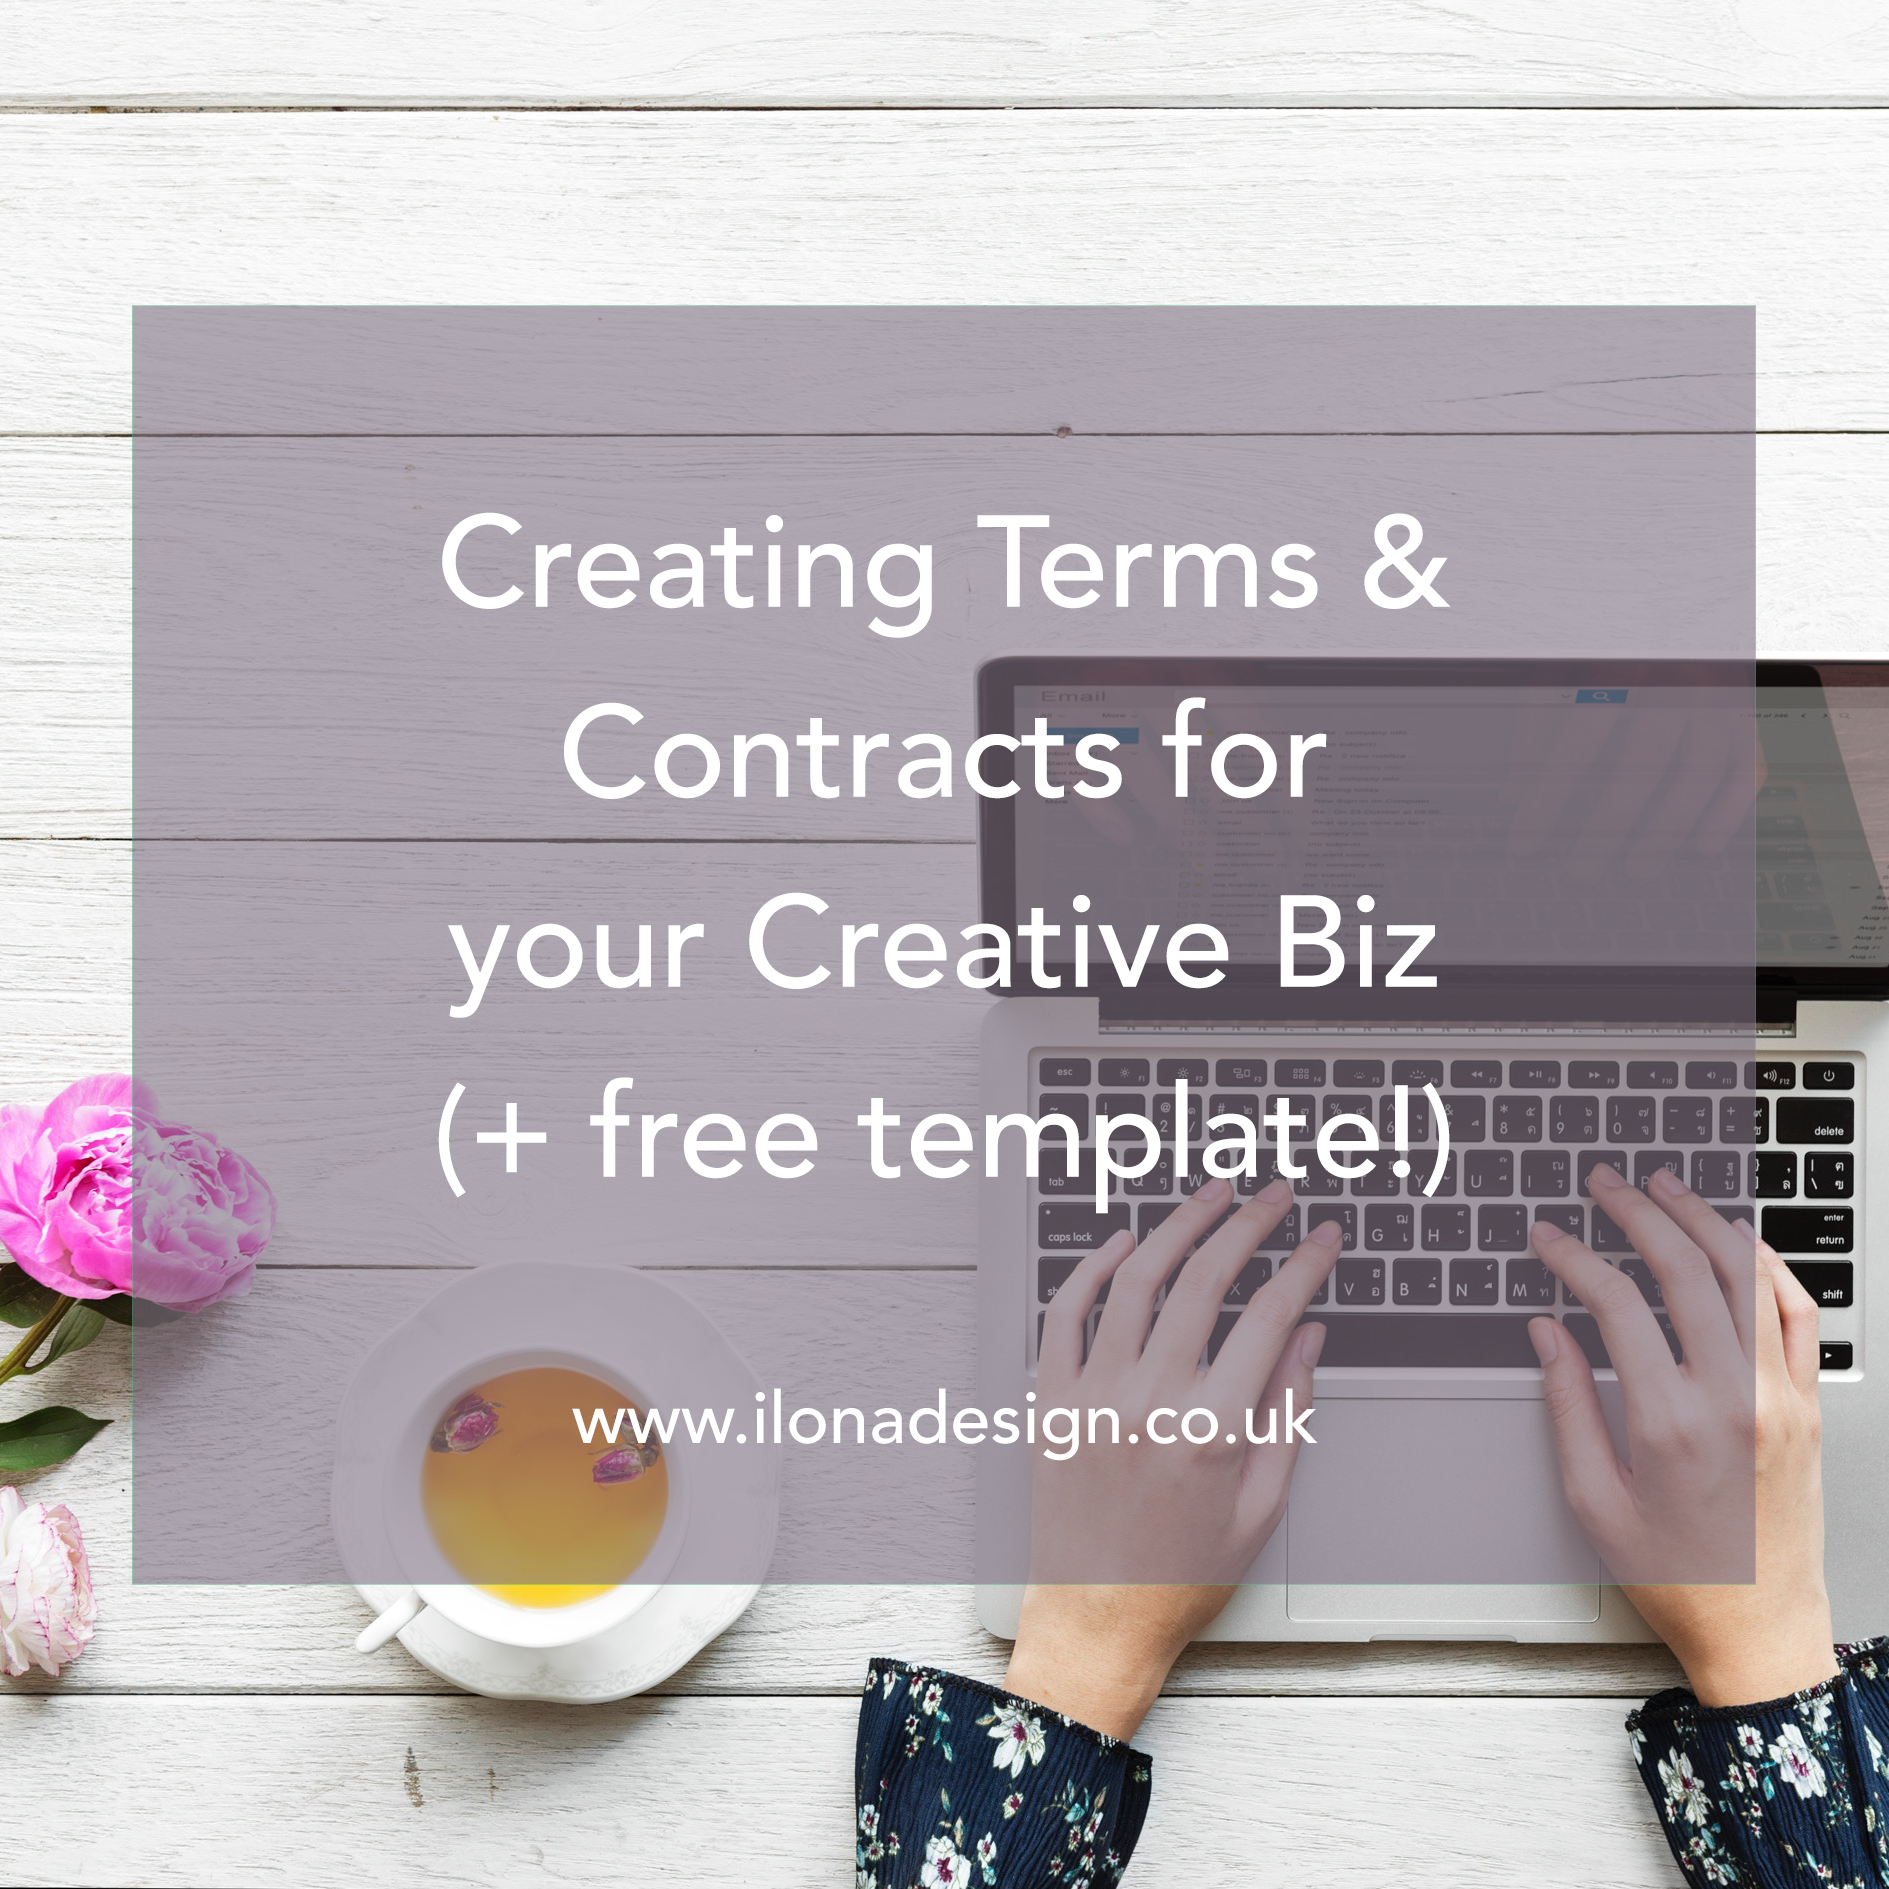 Creating Terms & Contracts for your Creative Biz (+ free template!)